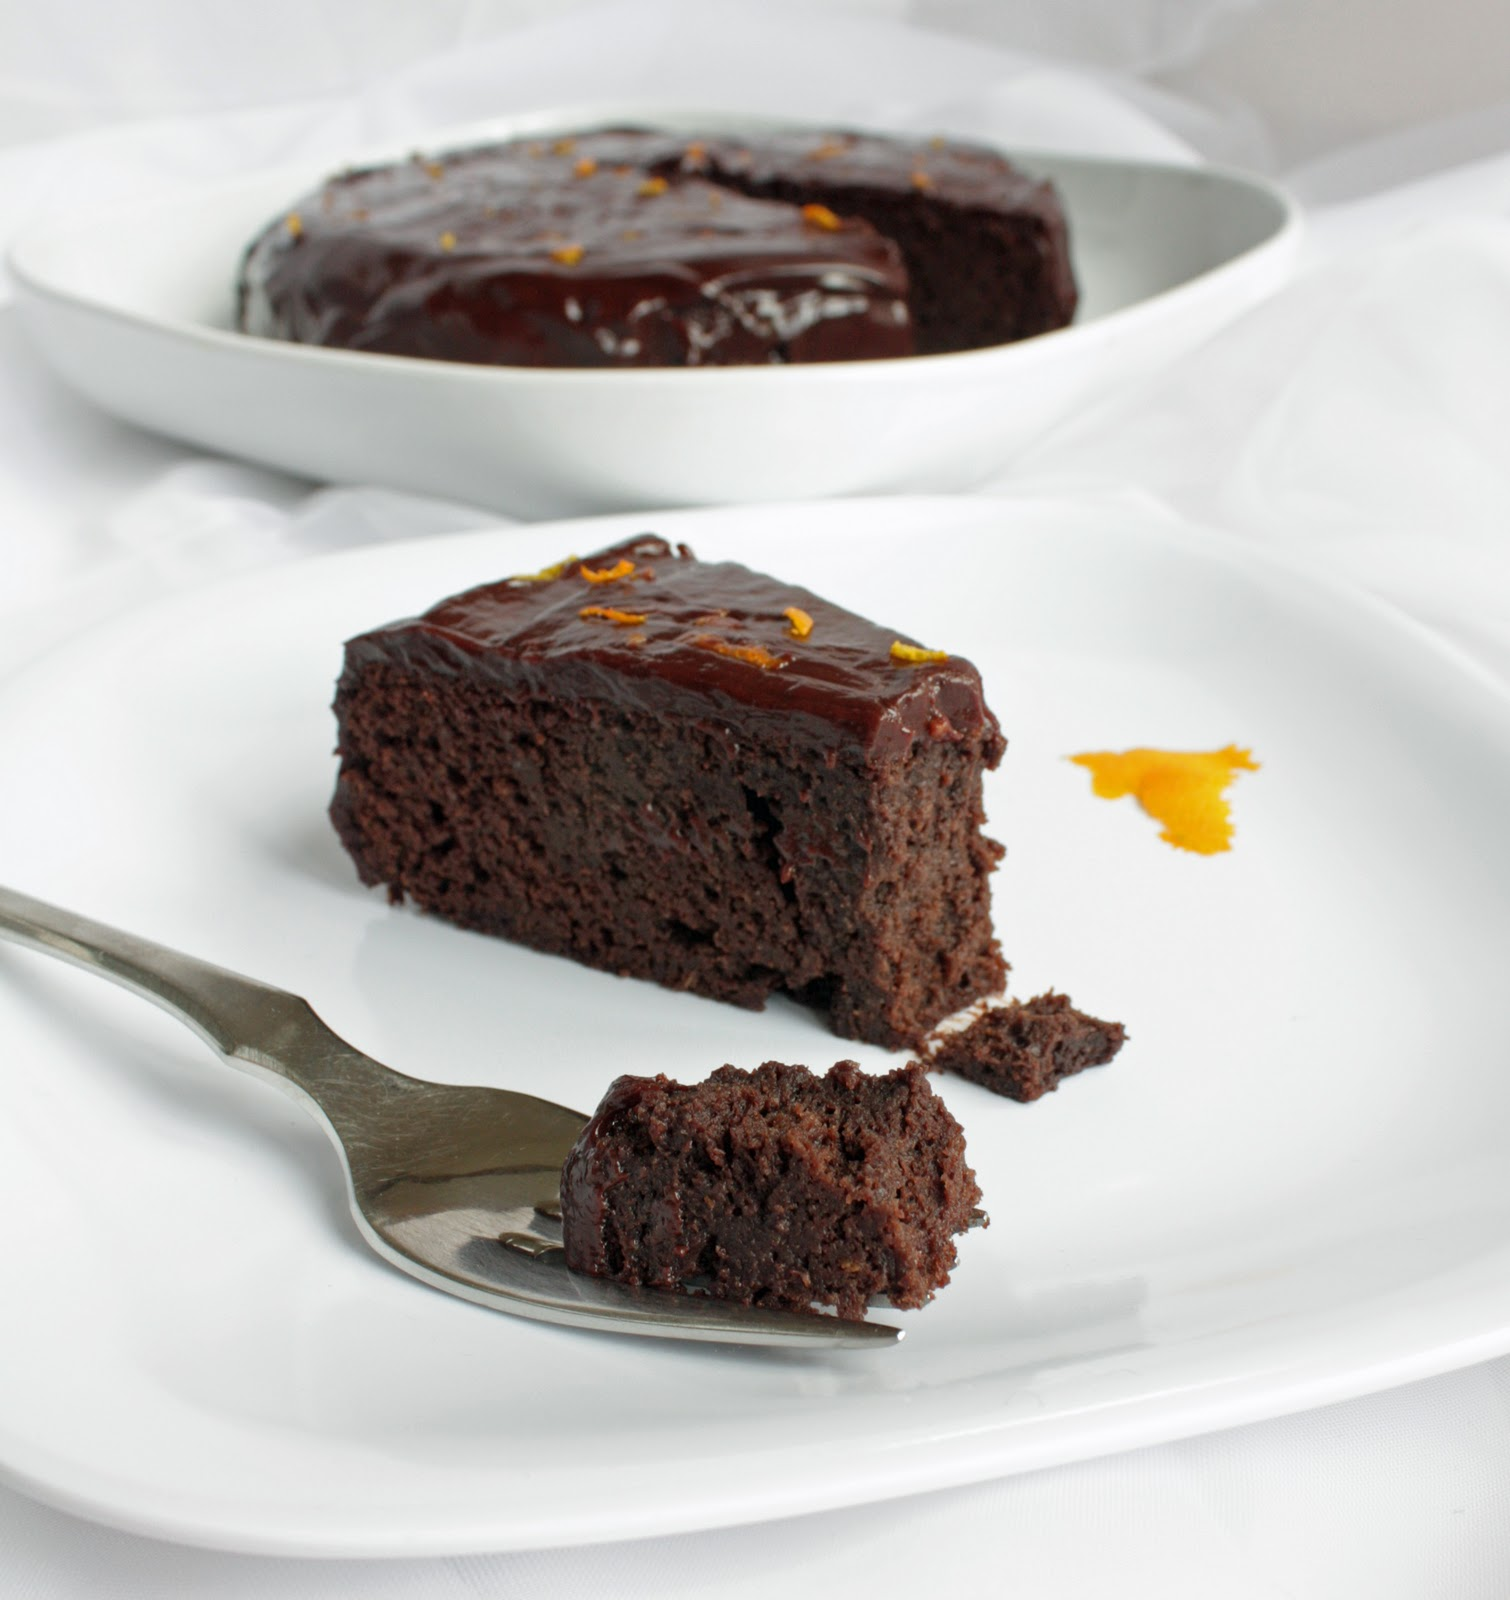 Chocolate Orange Garbanzo Bean Cake (Gluten Free) | I Breathe I'm ...